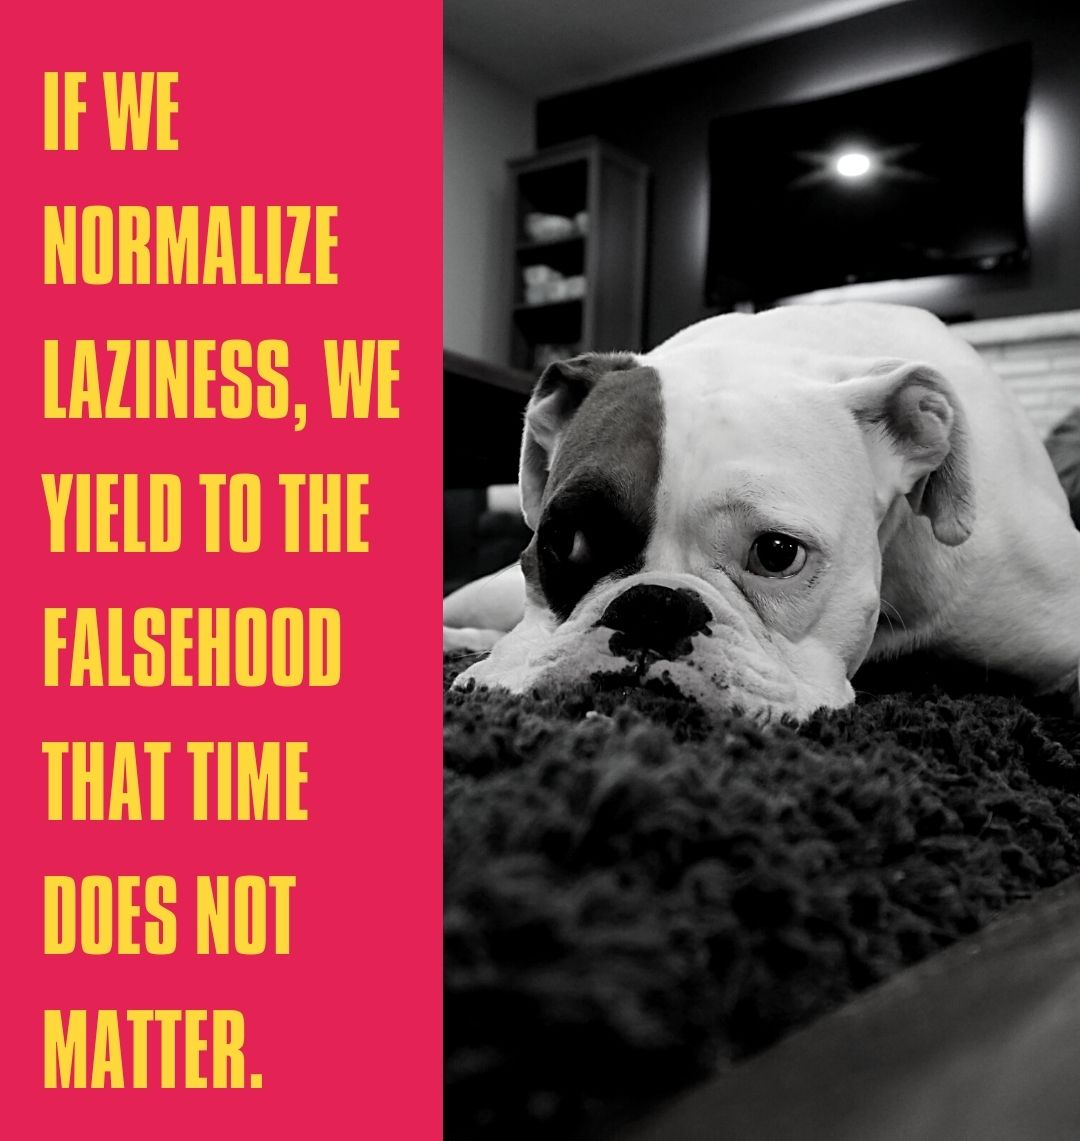 If we normalize laziness, we yield to the falsehood that time does not matter.